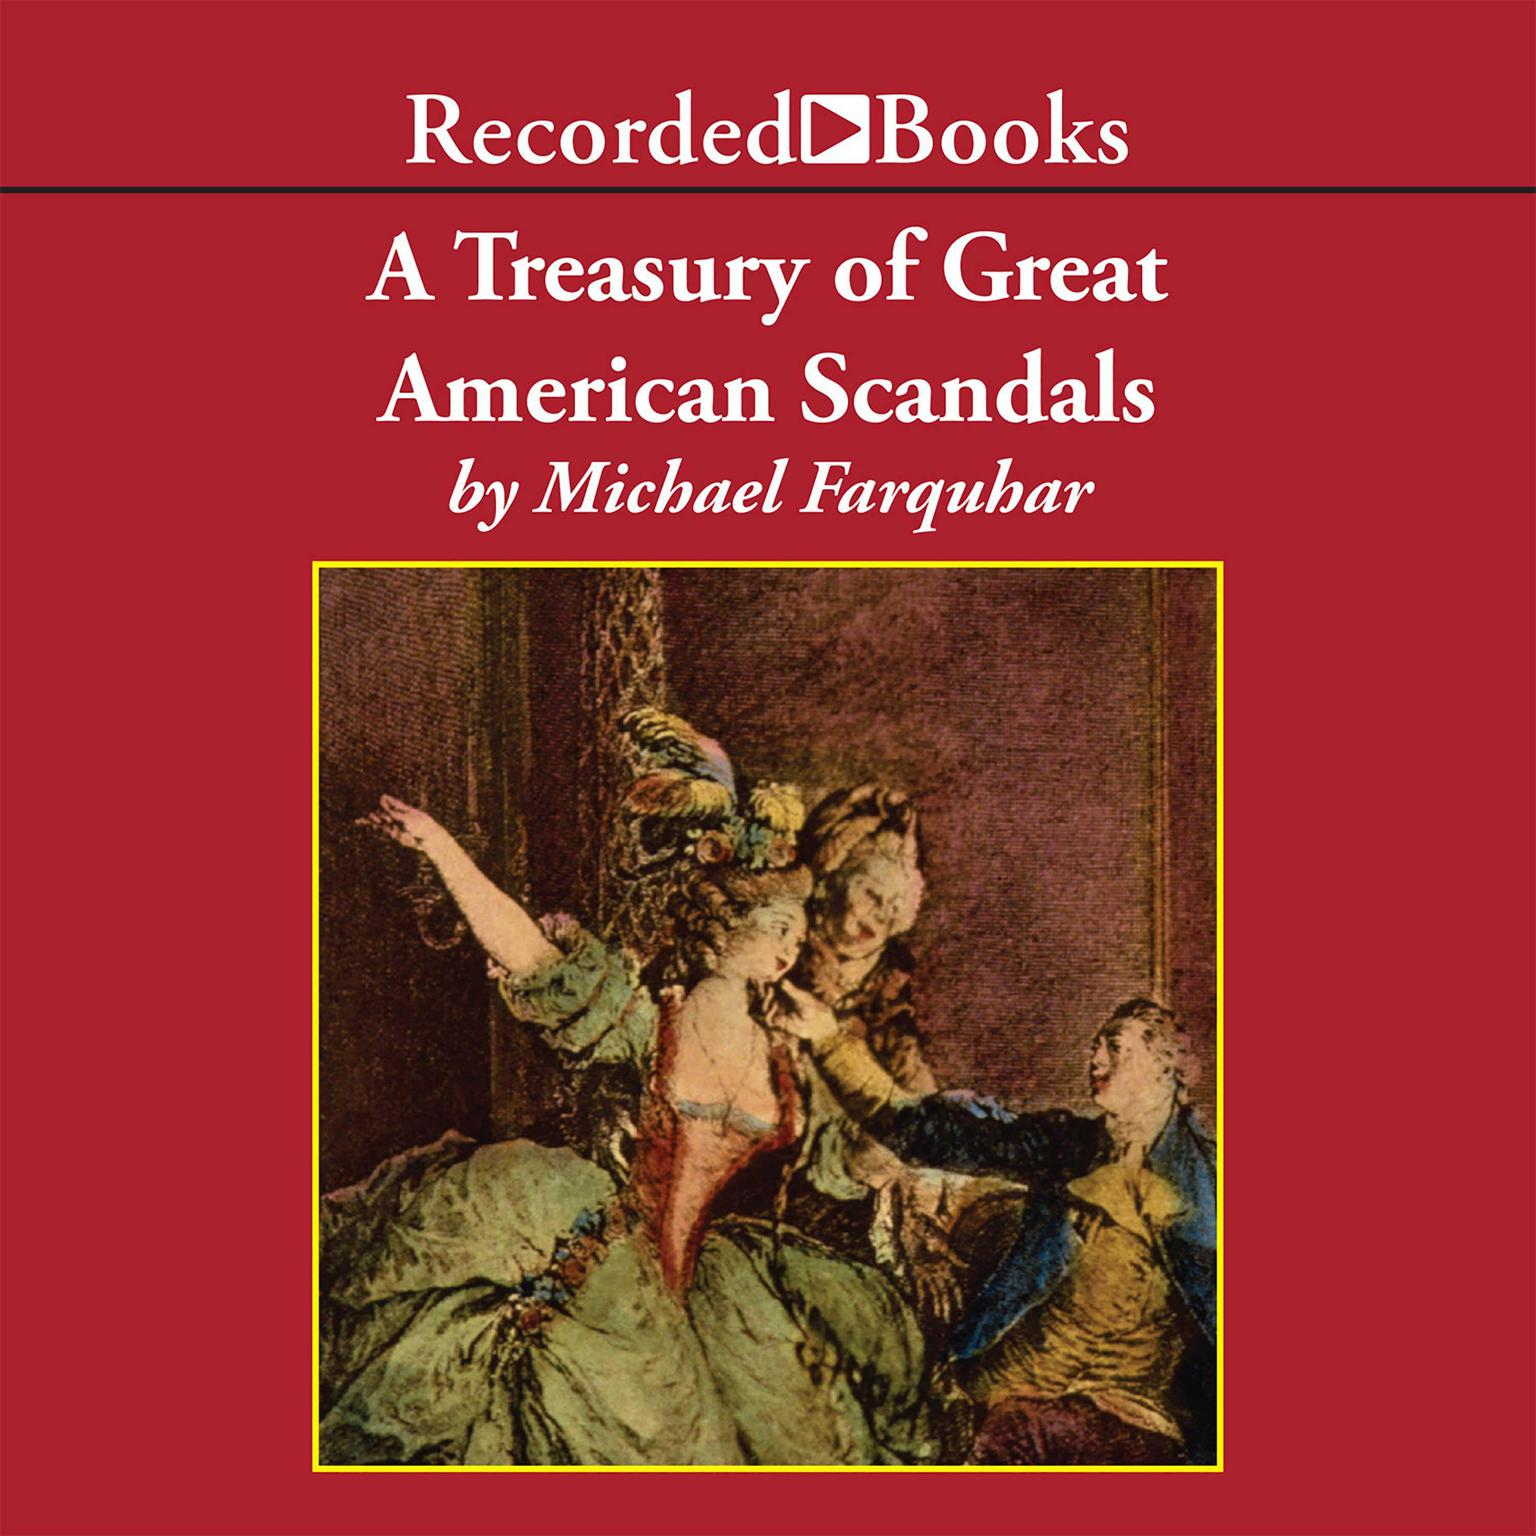 Printable A Treasury of Great American Scandals: Tantalizing True Tales of Historic Misbehavior by the Founding Fathers and Others Who Let Freedom Swing Audiobook Cover Art